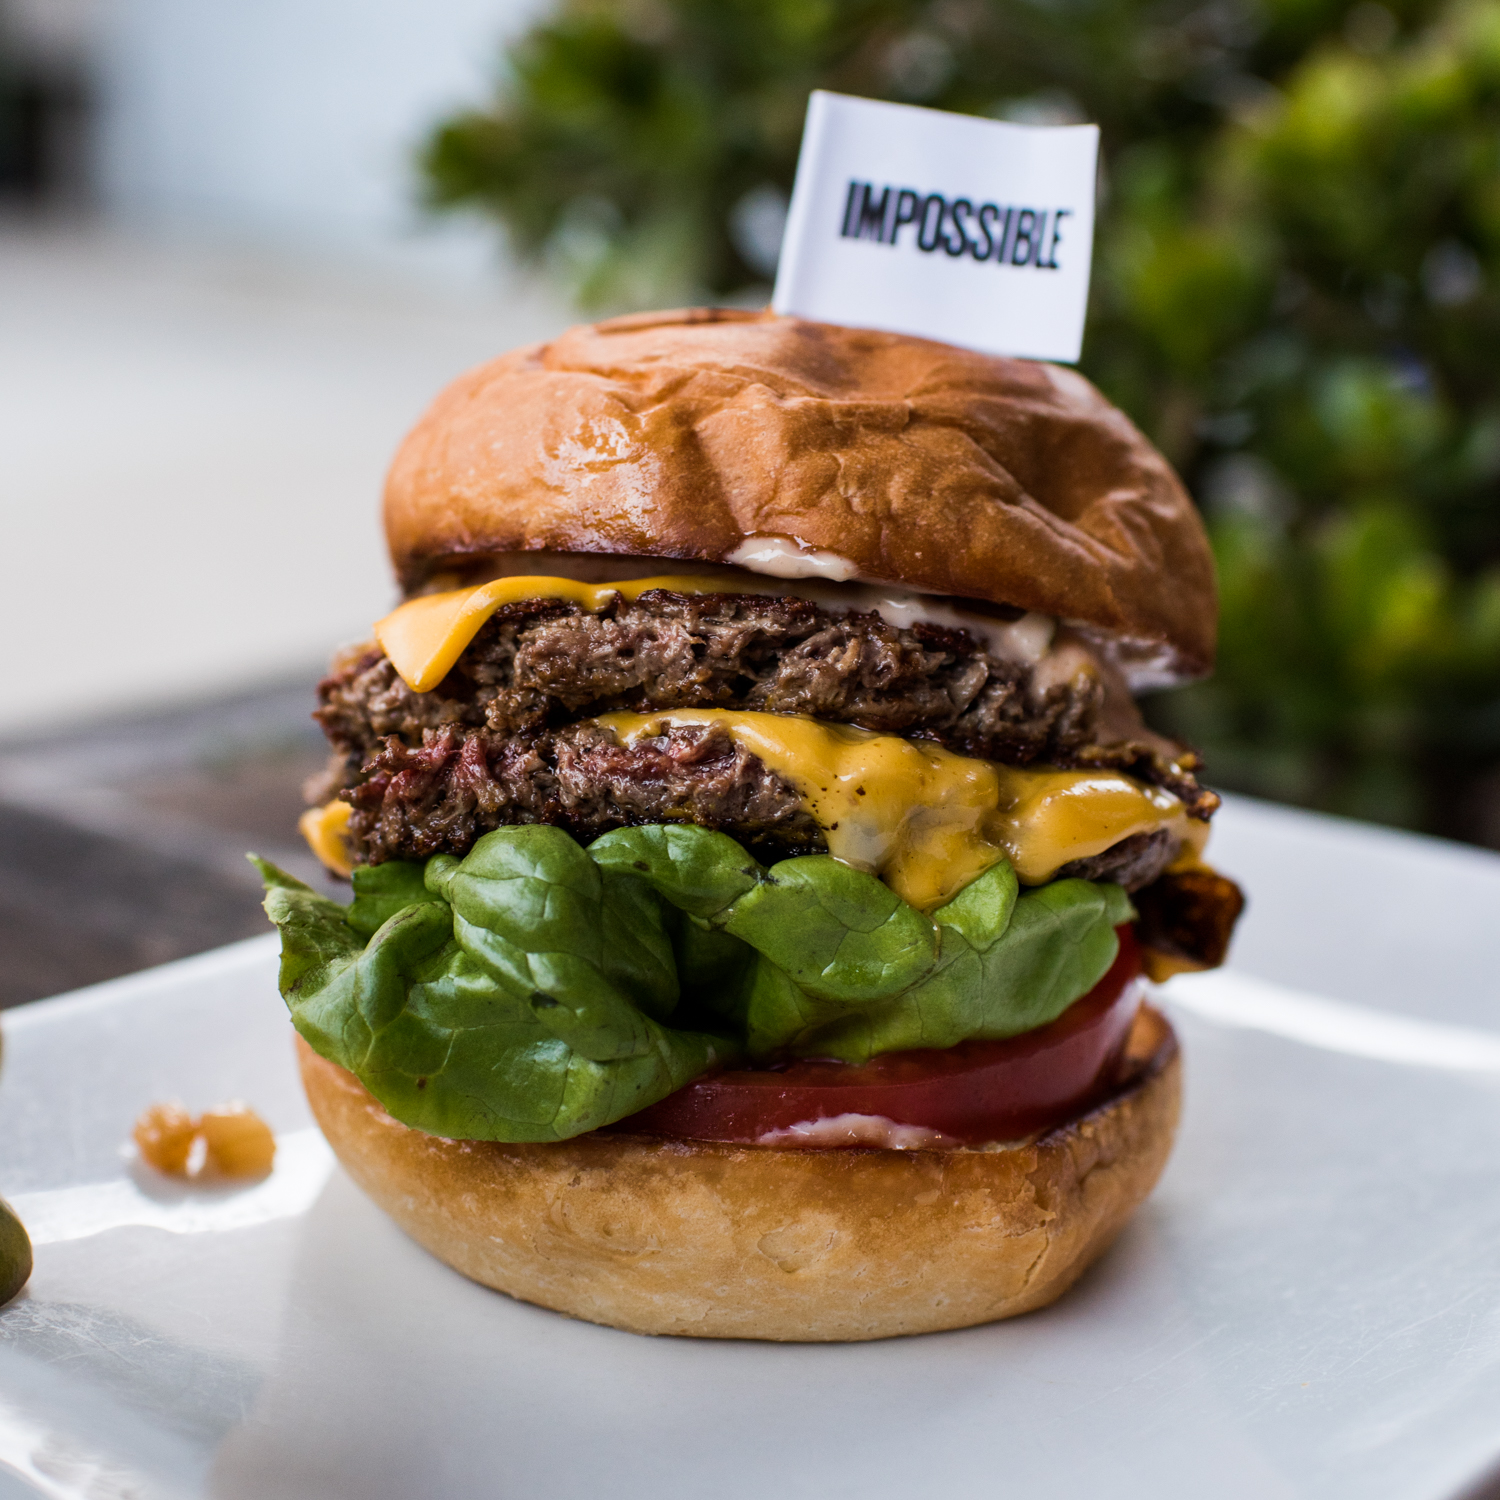 ImpossibleBurger-175.jpg